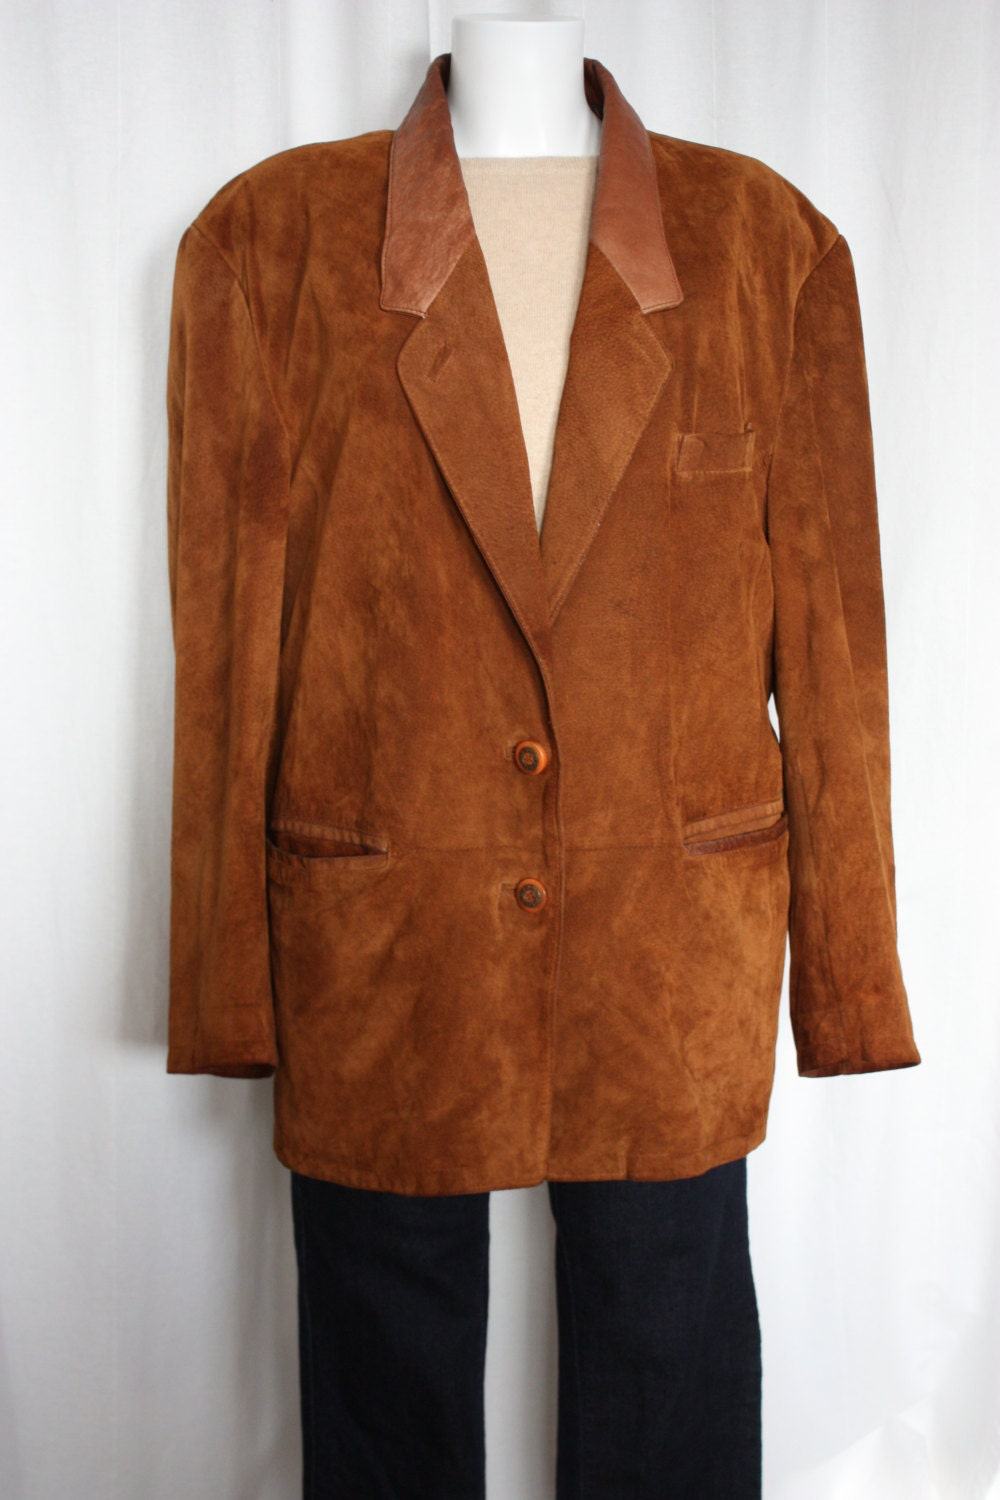 Shop a great selection of Women's Shearling & Suede Coats & Jackets at Nordstrom Rack. Find designer Women's Shearling & Suede Coats & Jackets .